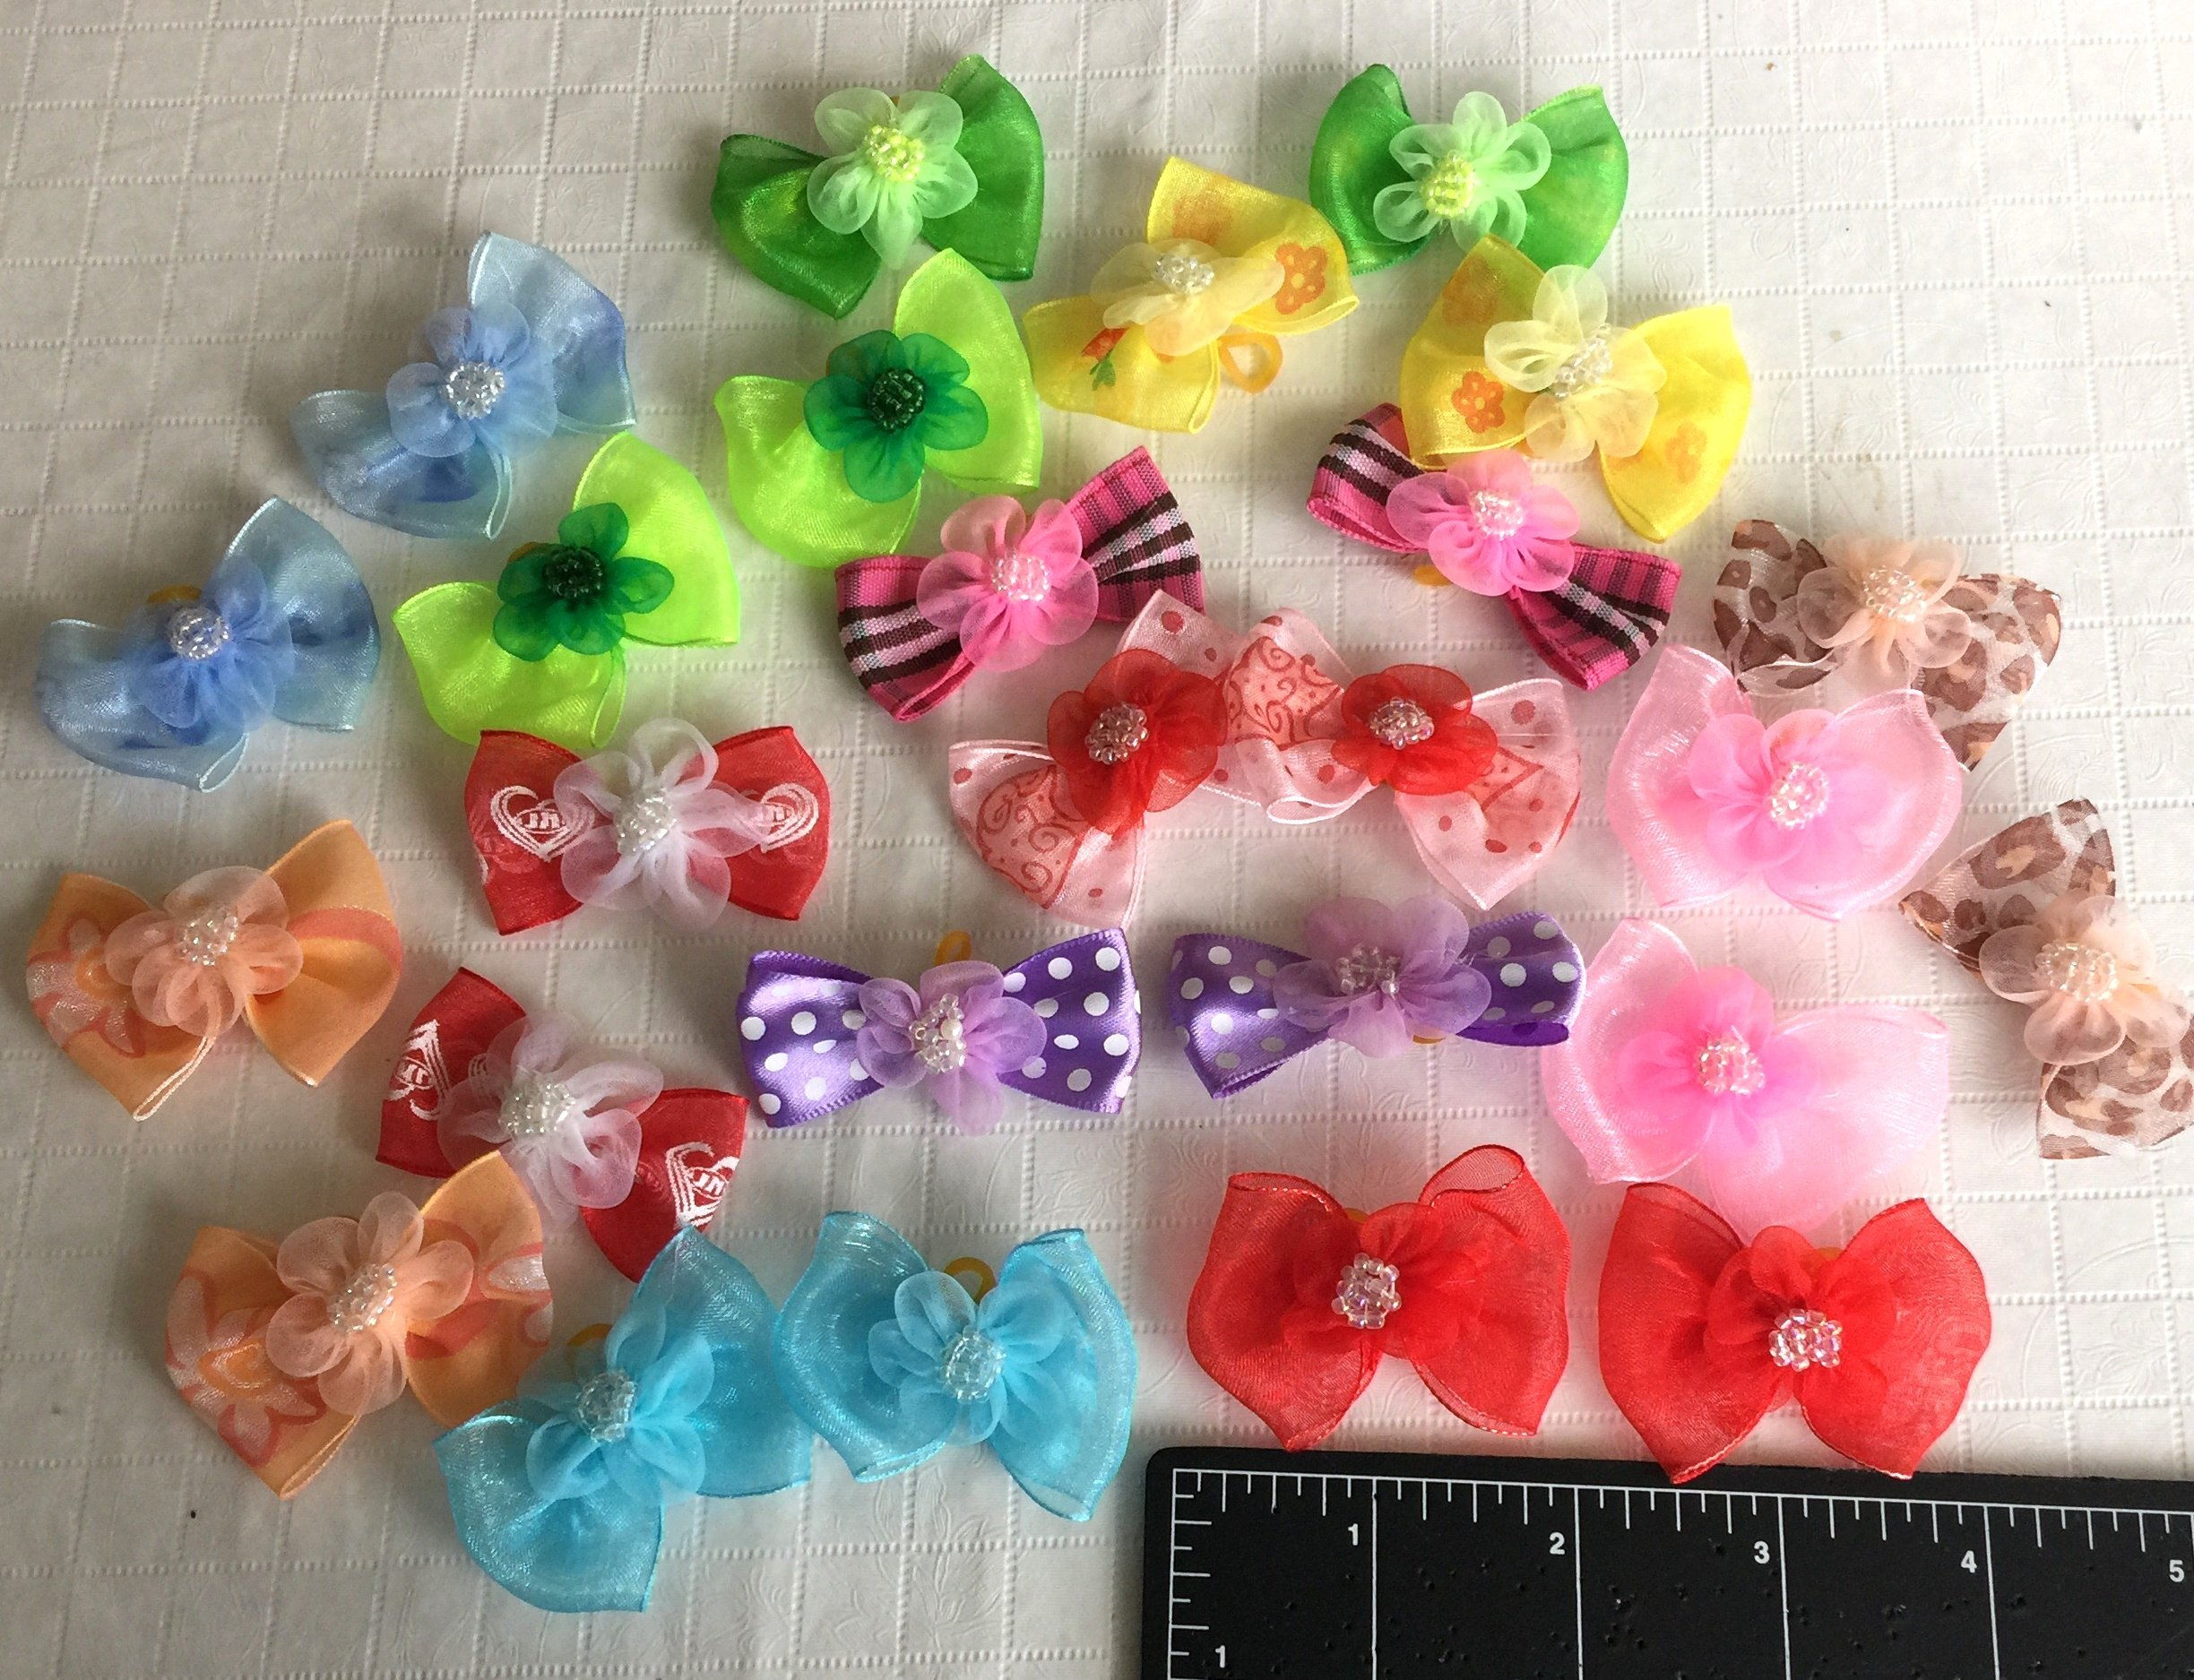 30 Dog Hair Bows 2 inch size - 3D with Shiffon Flower & Beads - Excellent for Girl Doggies!!!-handmade for Grooming by JJ Couture